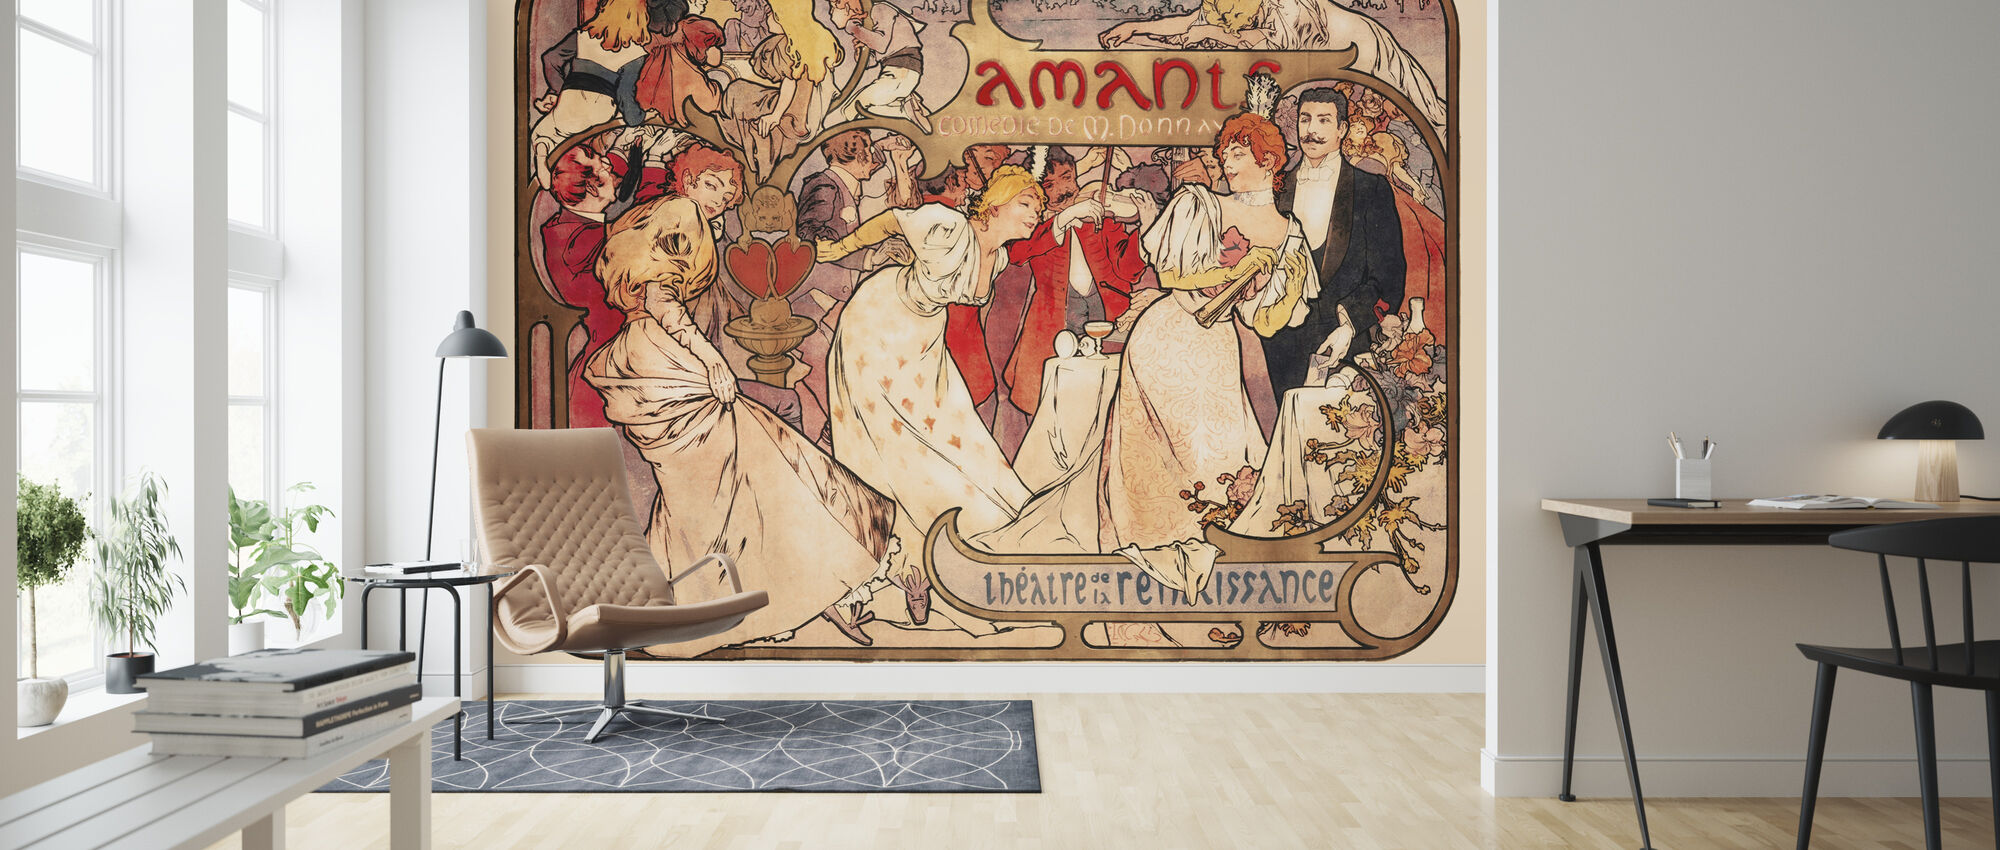 Alphonse Mucha - Amants Colour Litho - Behang - Woonkamer